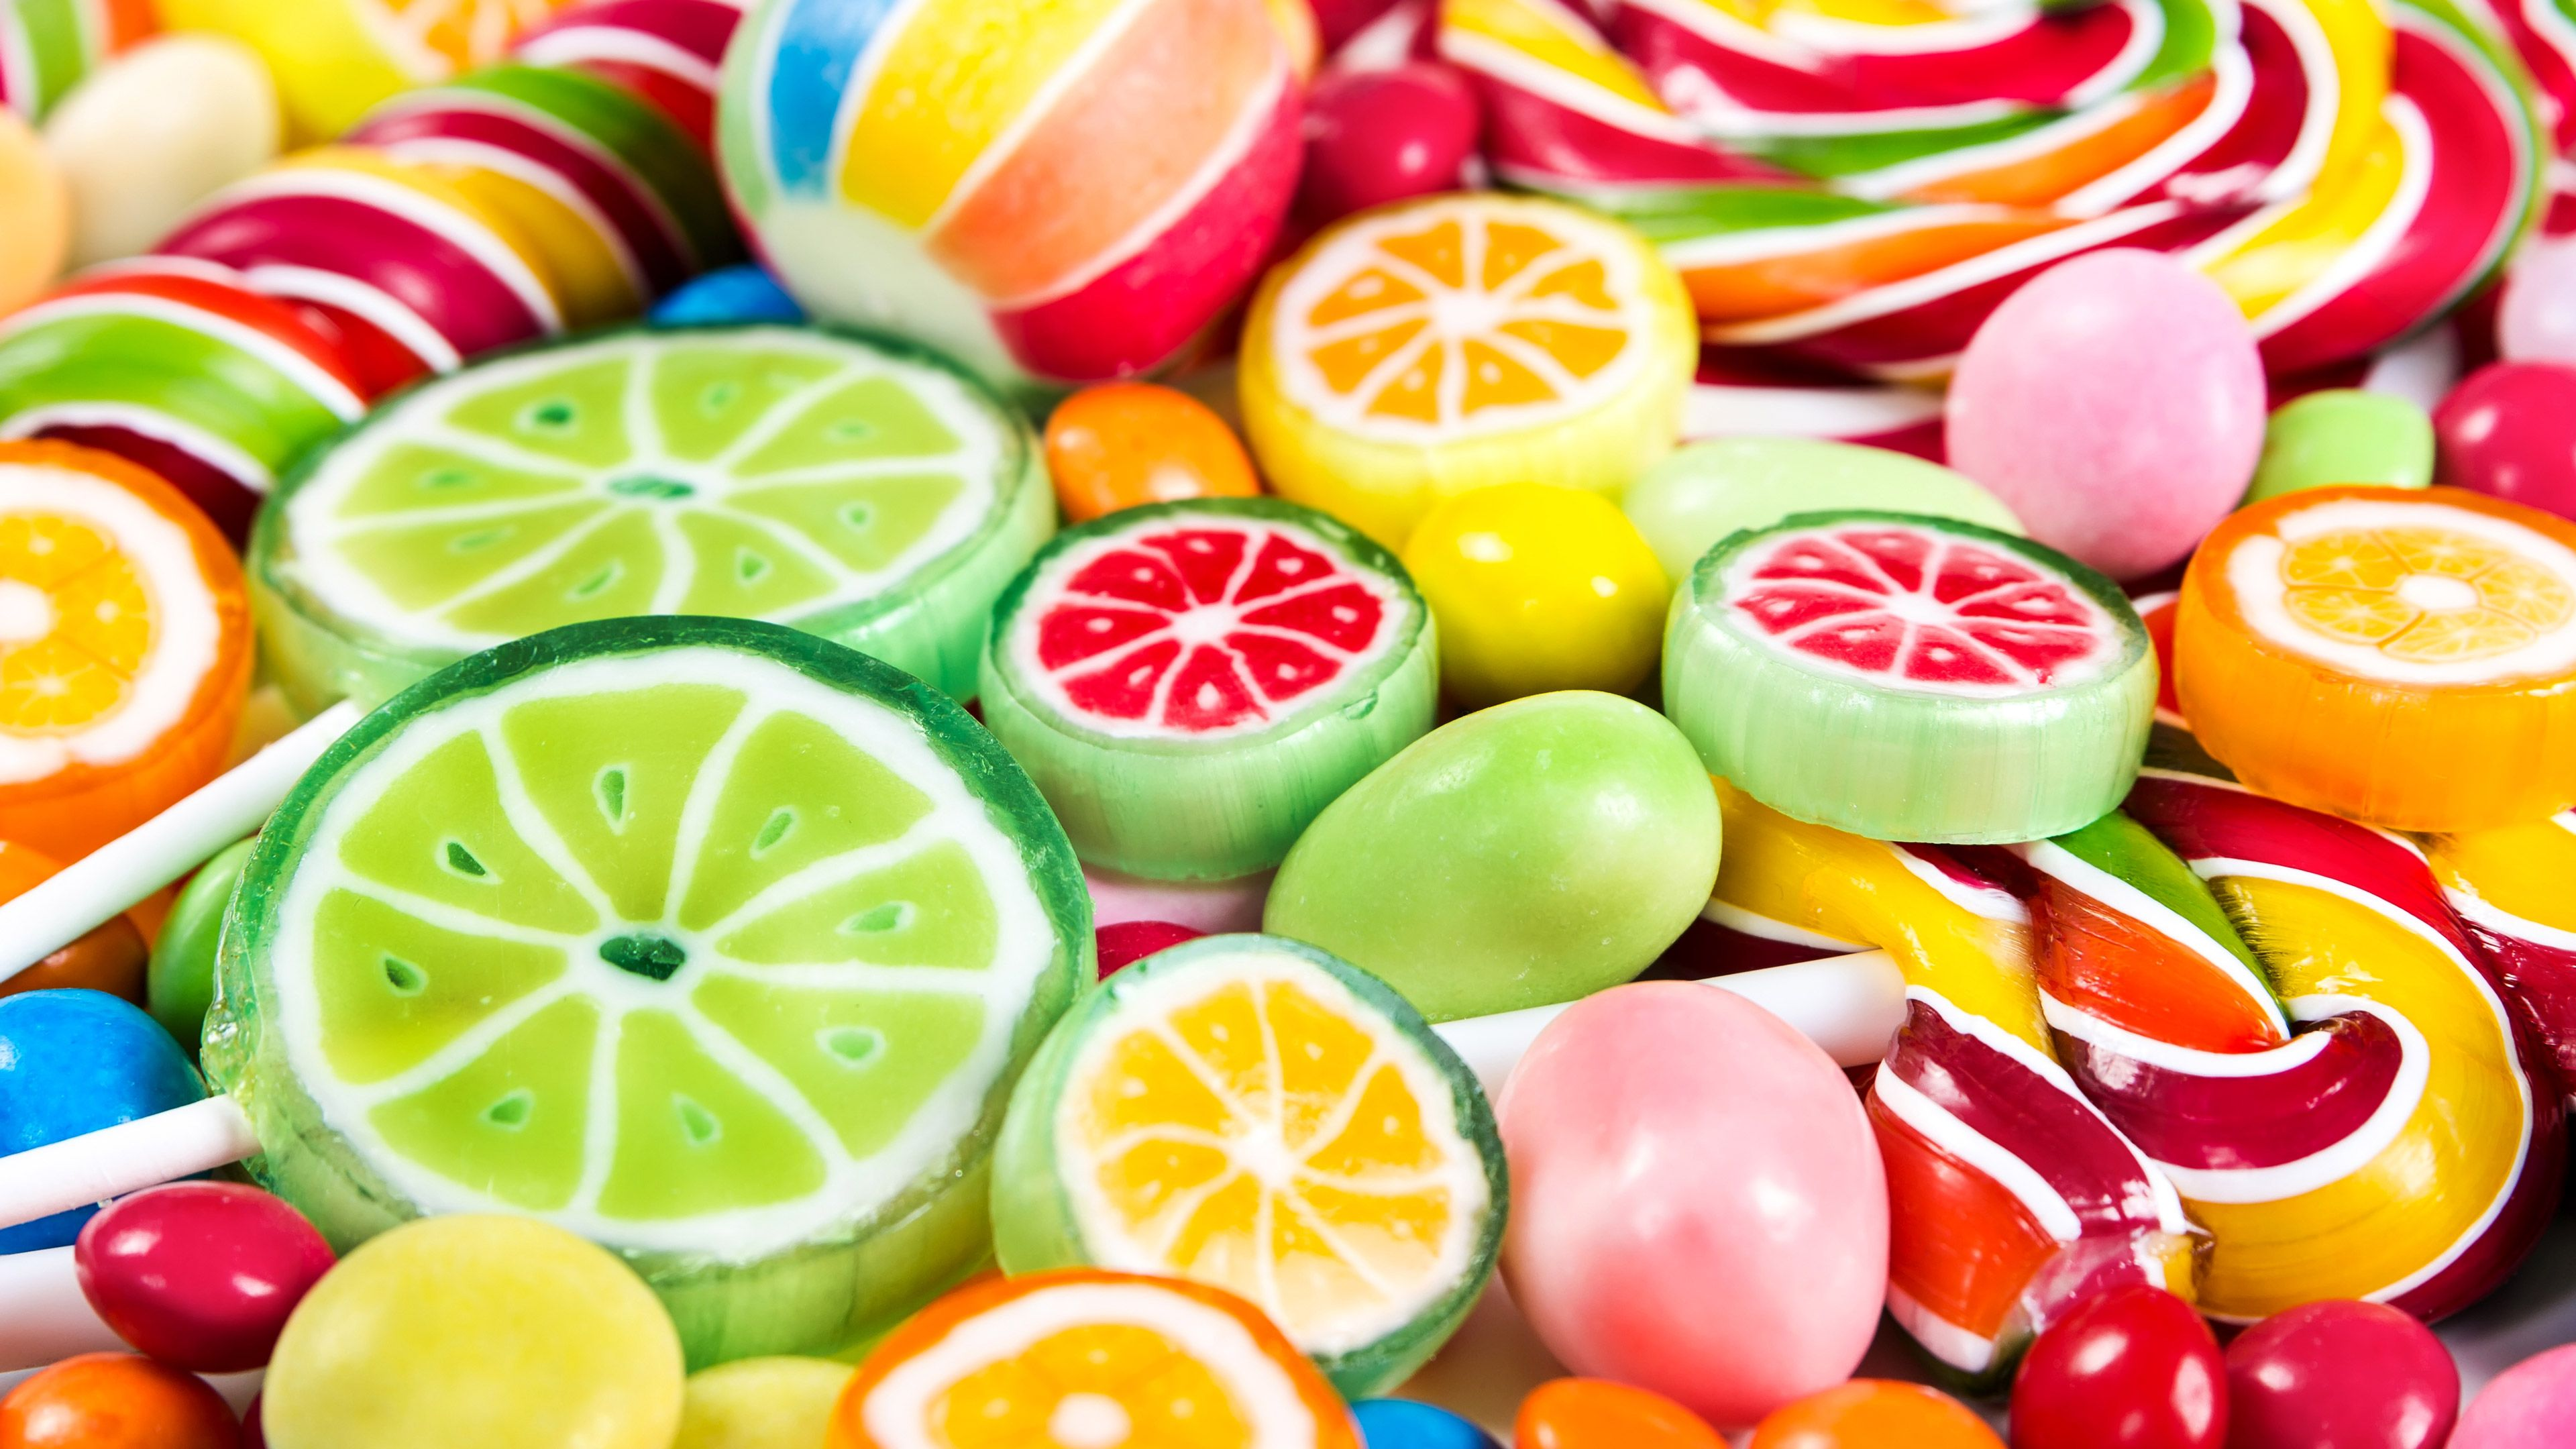 Colorful Candy Wallpapers   Top Colorful Candy Backgrounds 3840x2160